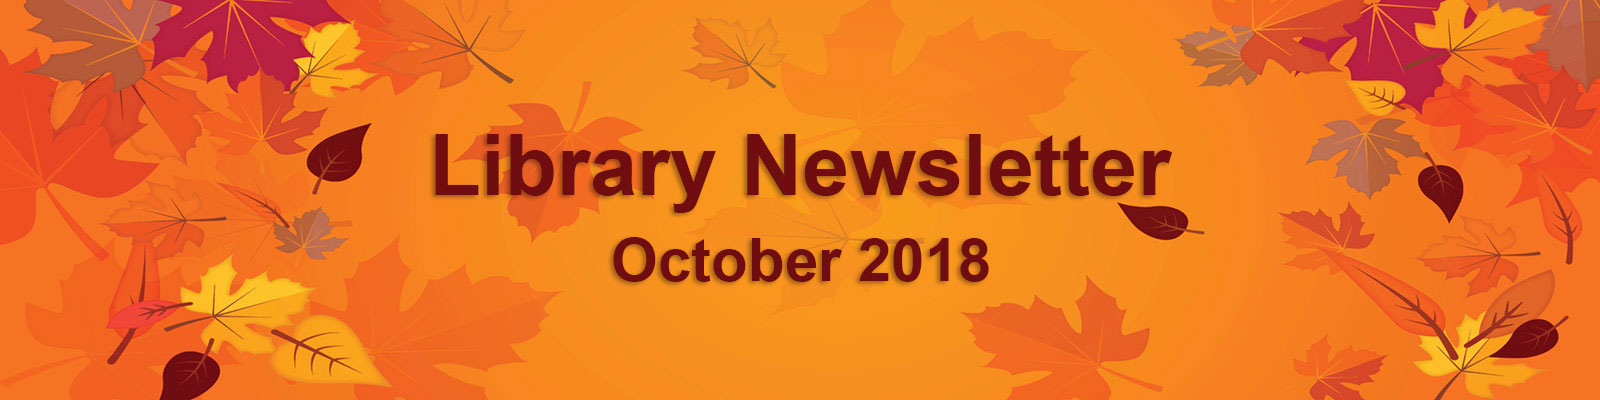 2108 October Newsletter leaves banner